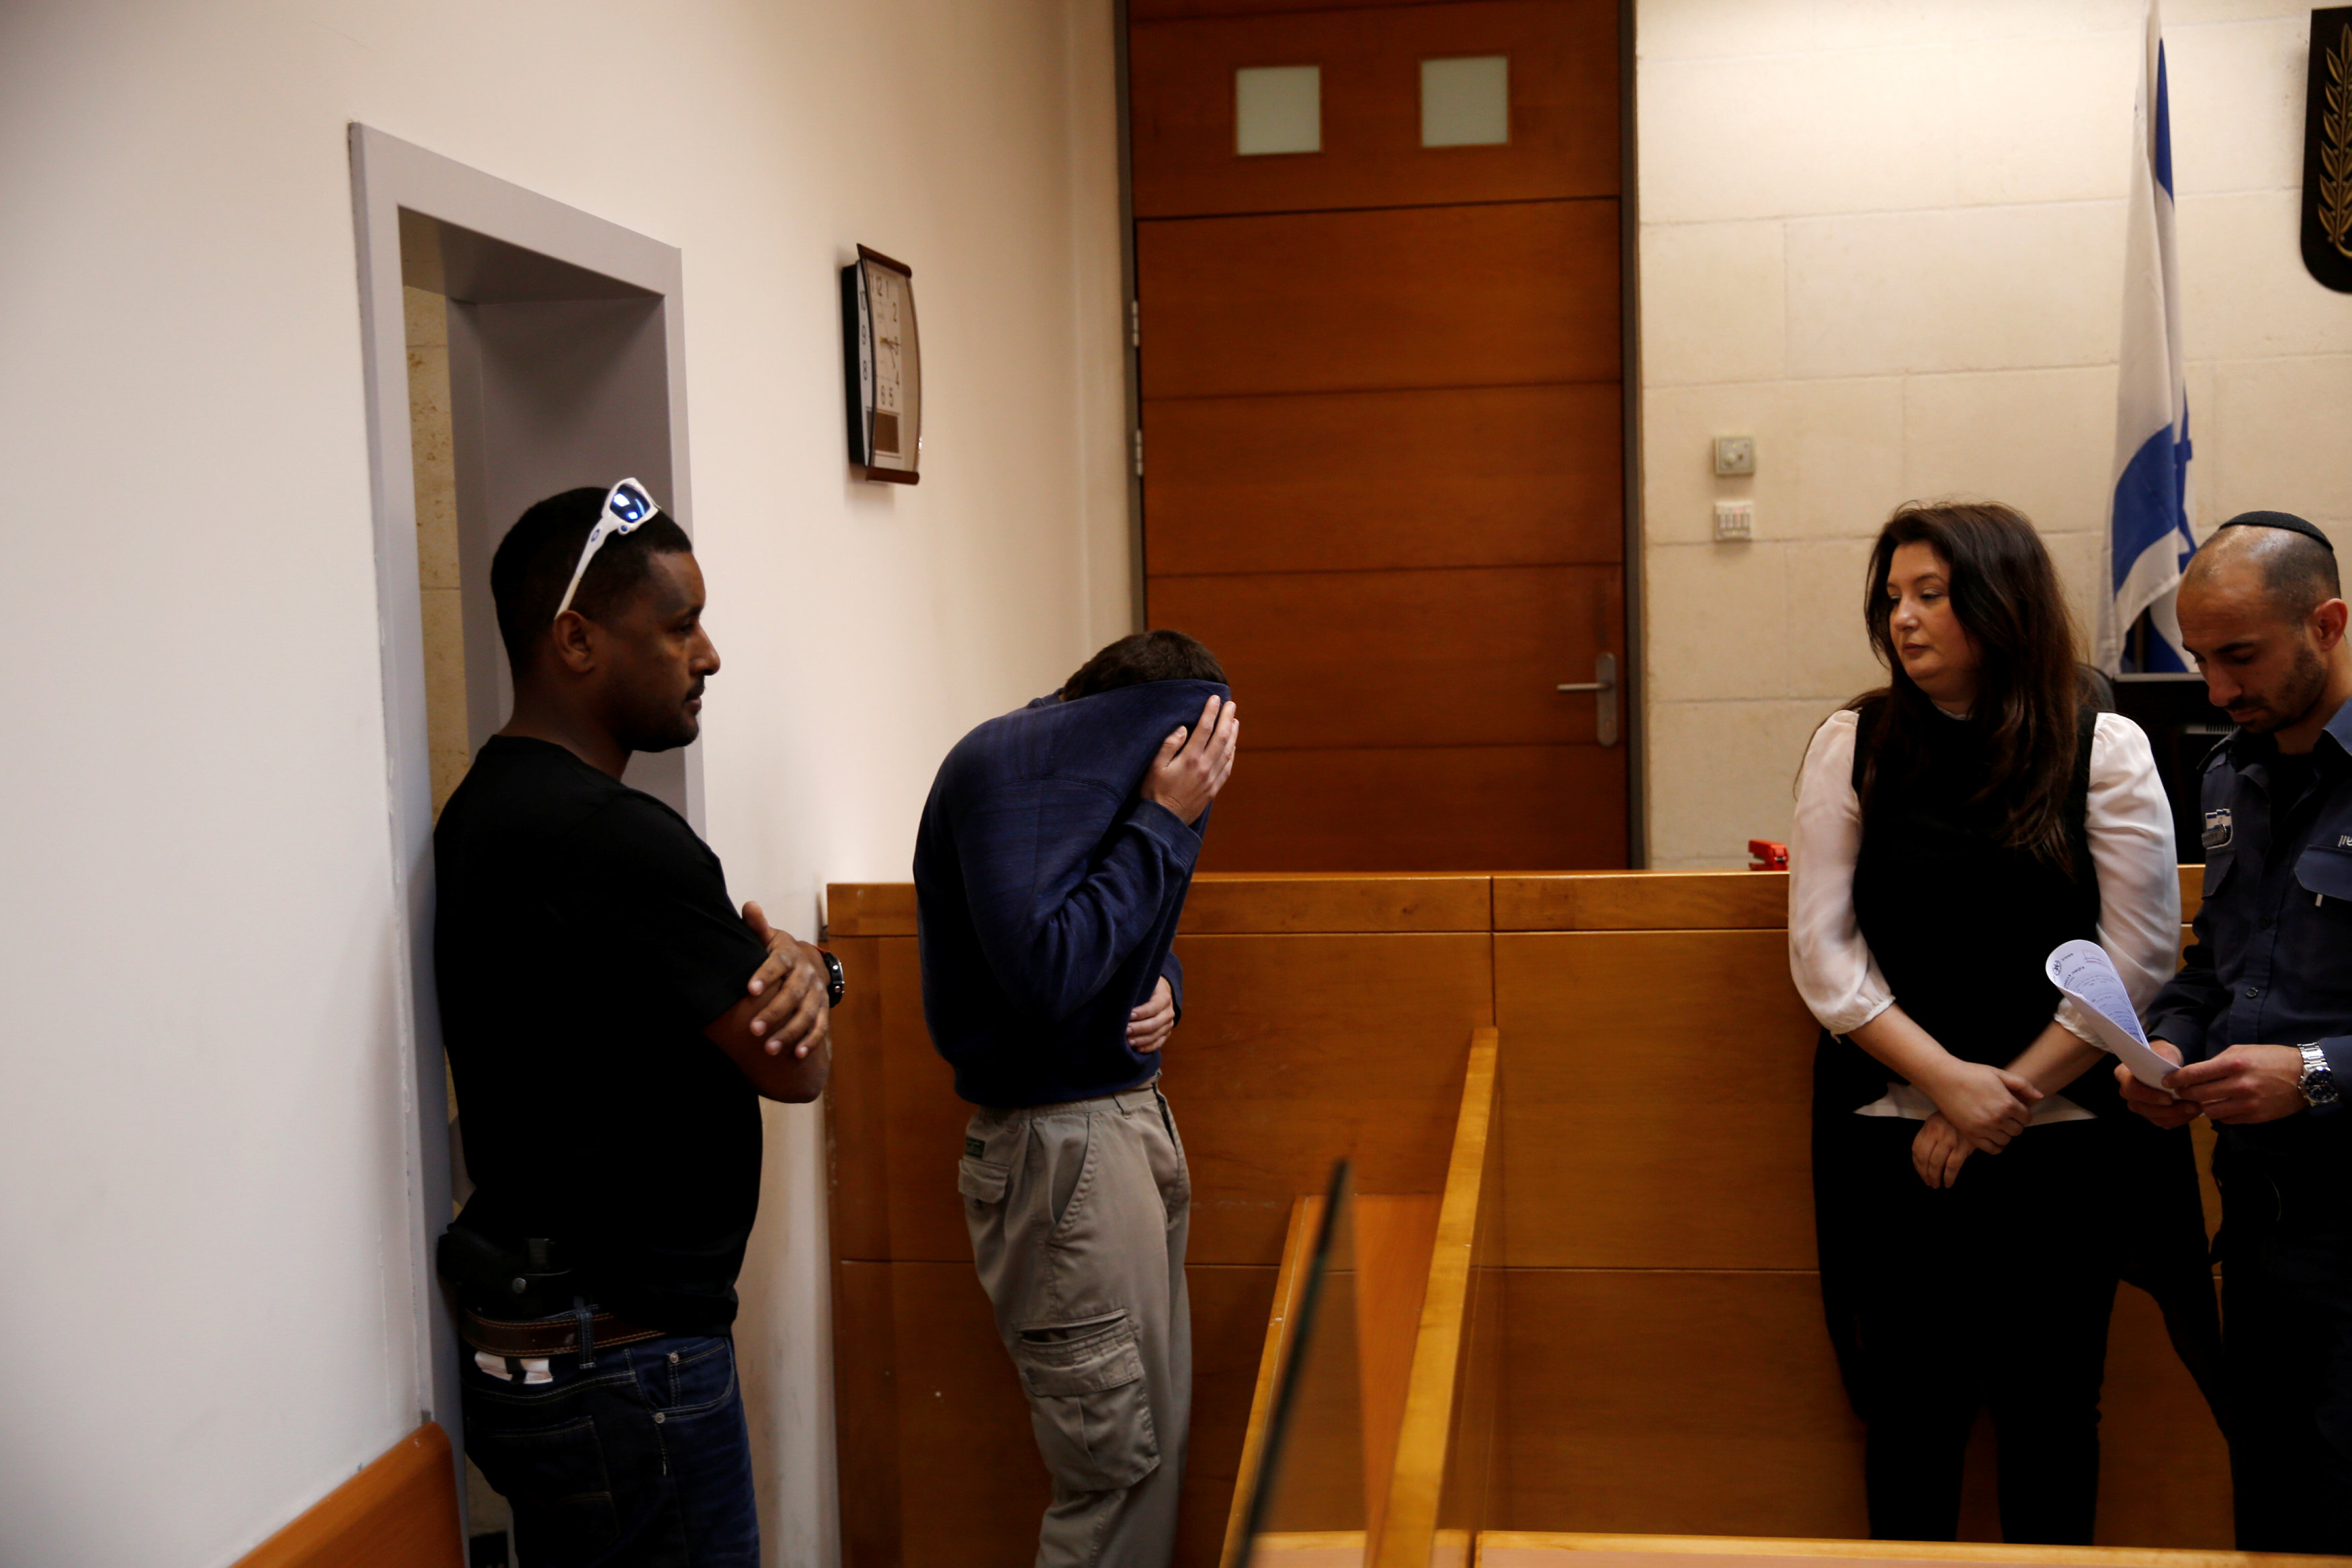 U.S.-Israeli teen (2ndL) arrested in Israel on suspicion of making bomb threats against Jewish community centres in the United States, Australia and New Zealand over the past three months, is seen before the start of a remand hearing at Magistrate's Court in Rishon Lezion, Israel March 23, 2017. REUTERS/Baz Ratner